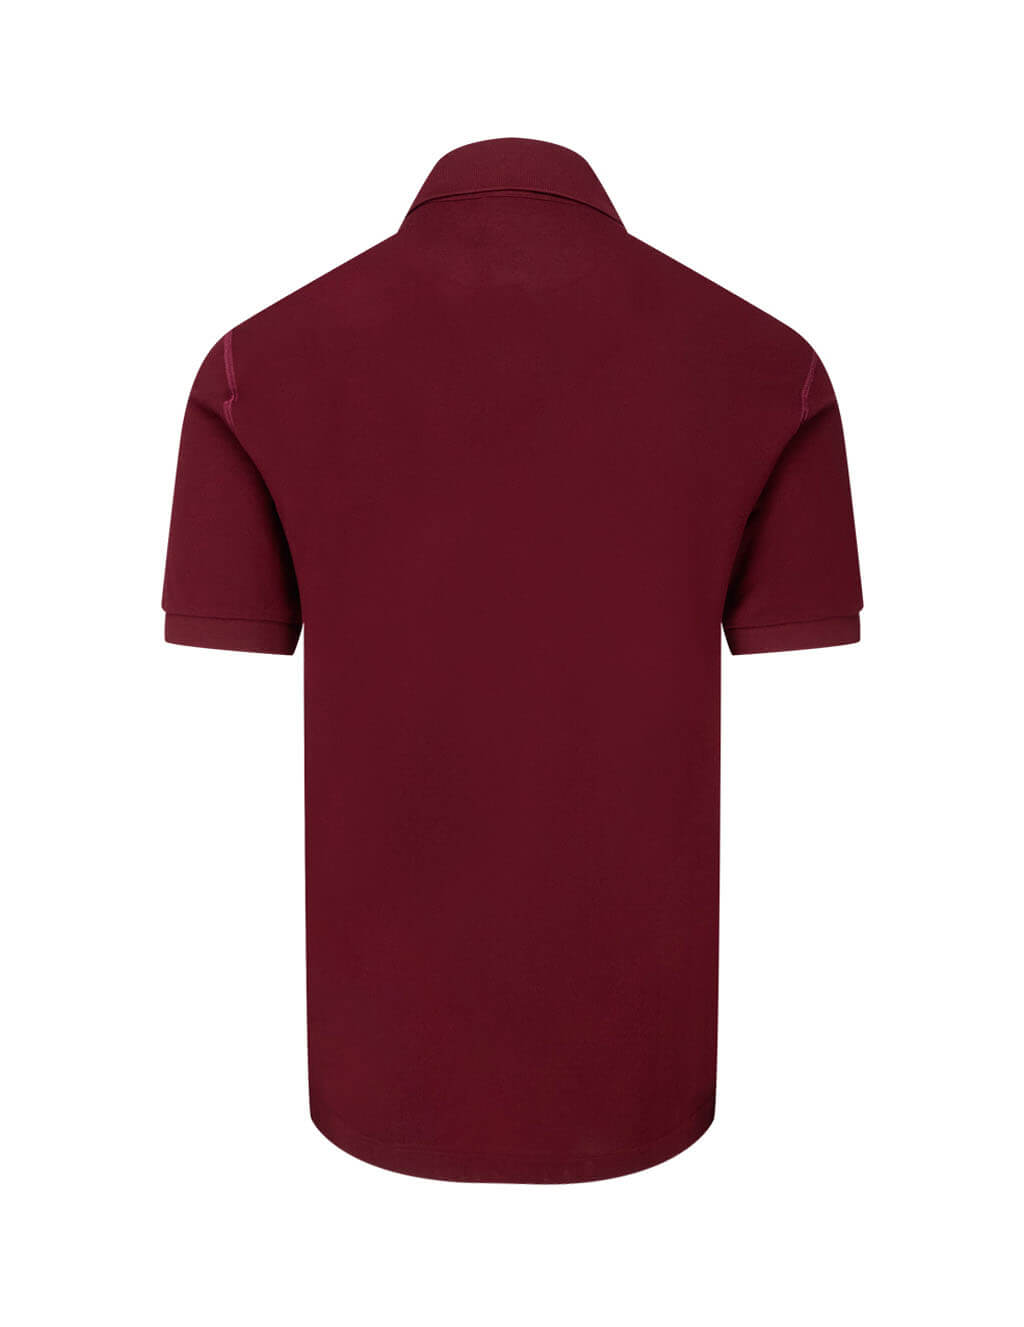 Dolce&Gabbana Men's Red Logo Plaque Polo Shirt G8KK1TFU7ENR0369